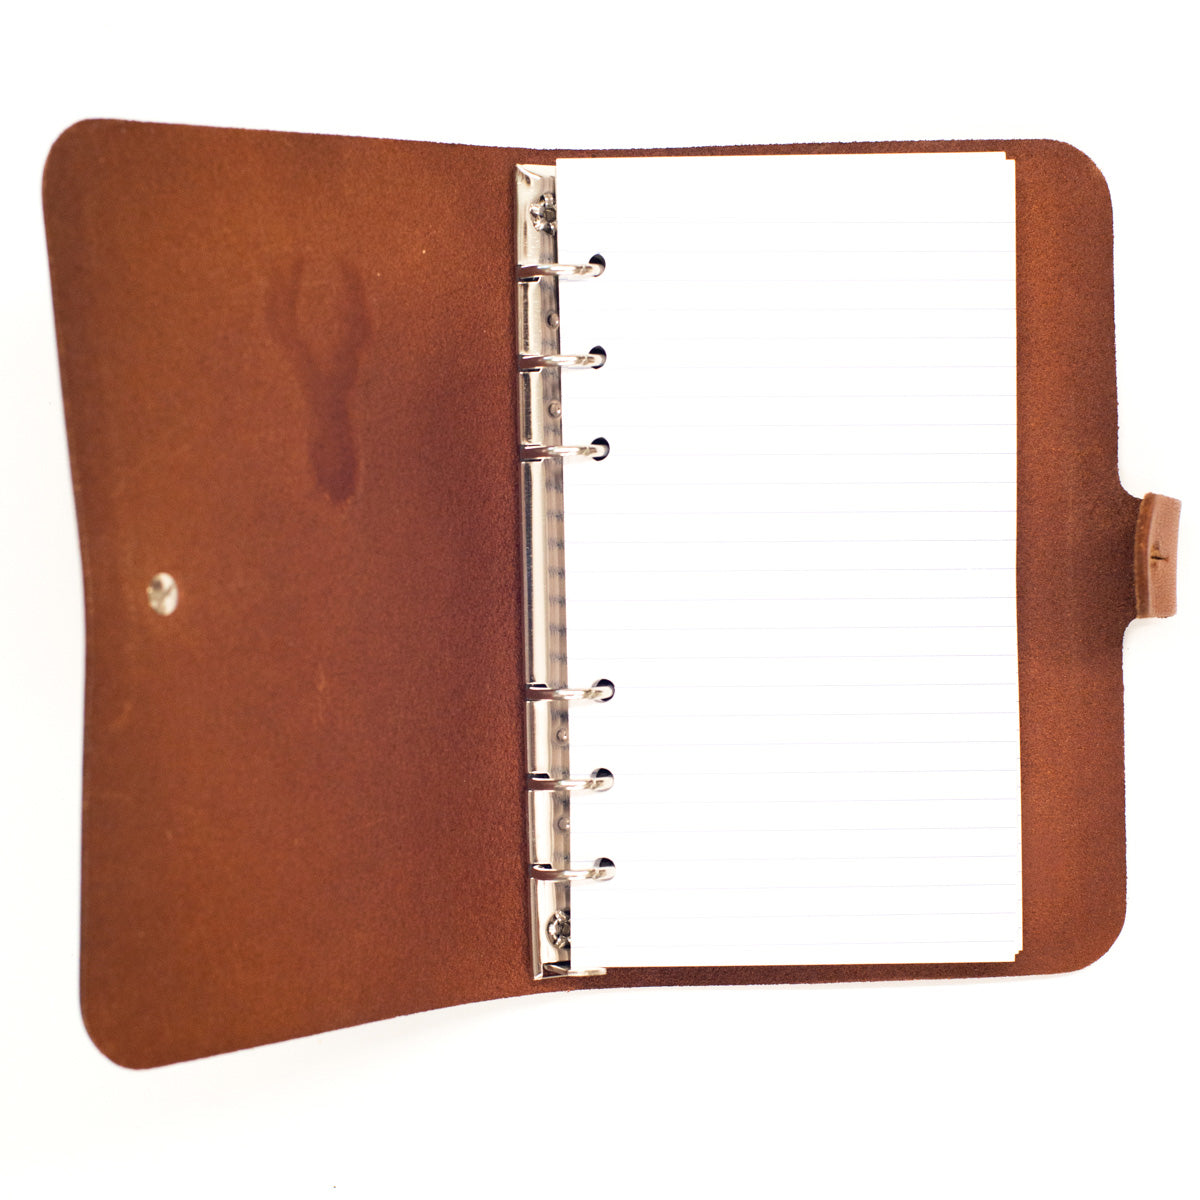 Leather Nature Journal